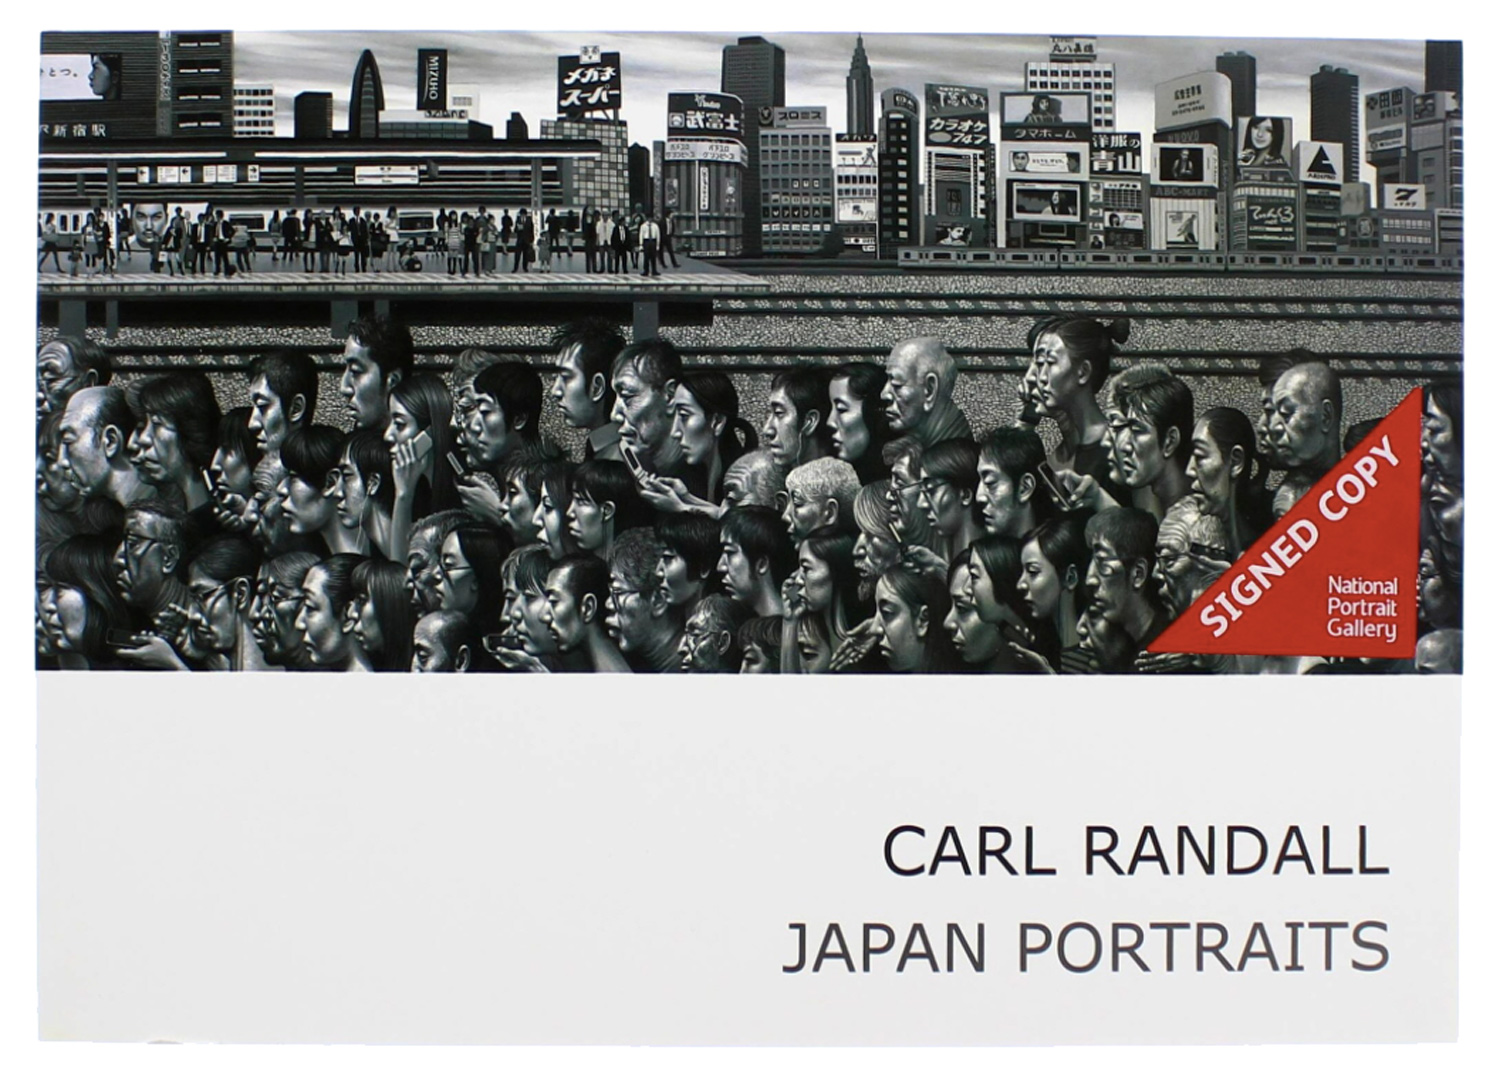 'Carl Randall - Japan Portraits' catalogue